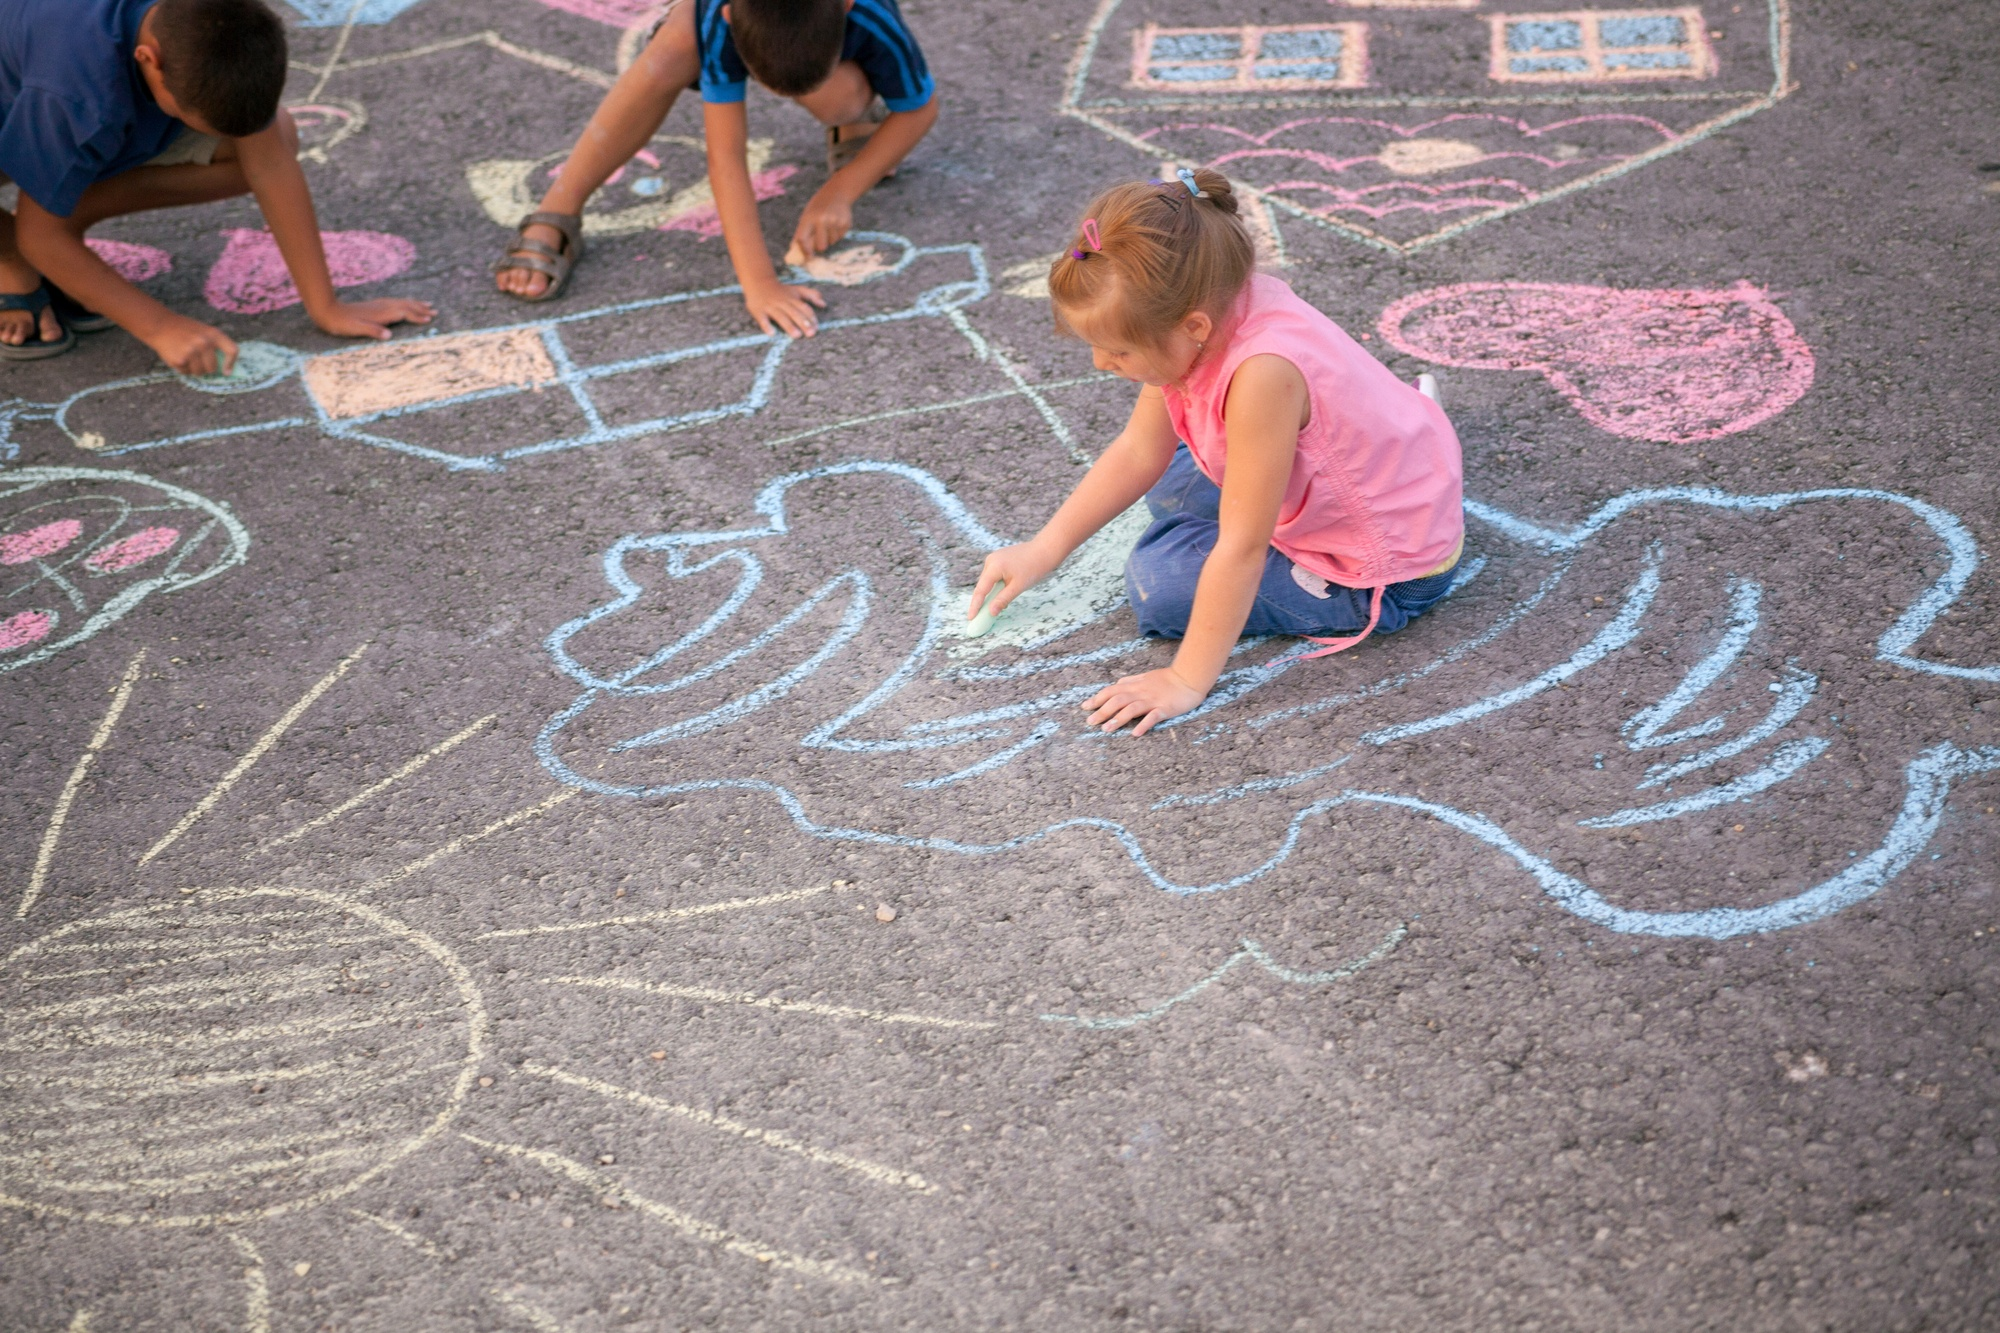 Children love drawing with sidewalk chalk